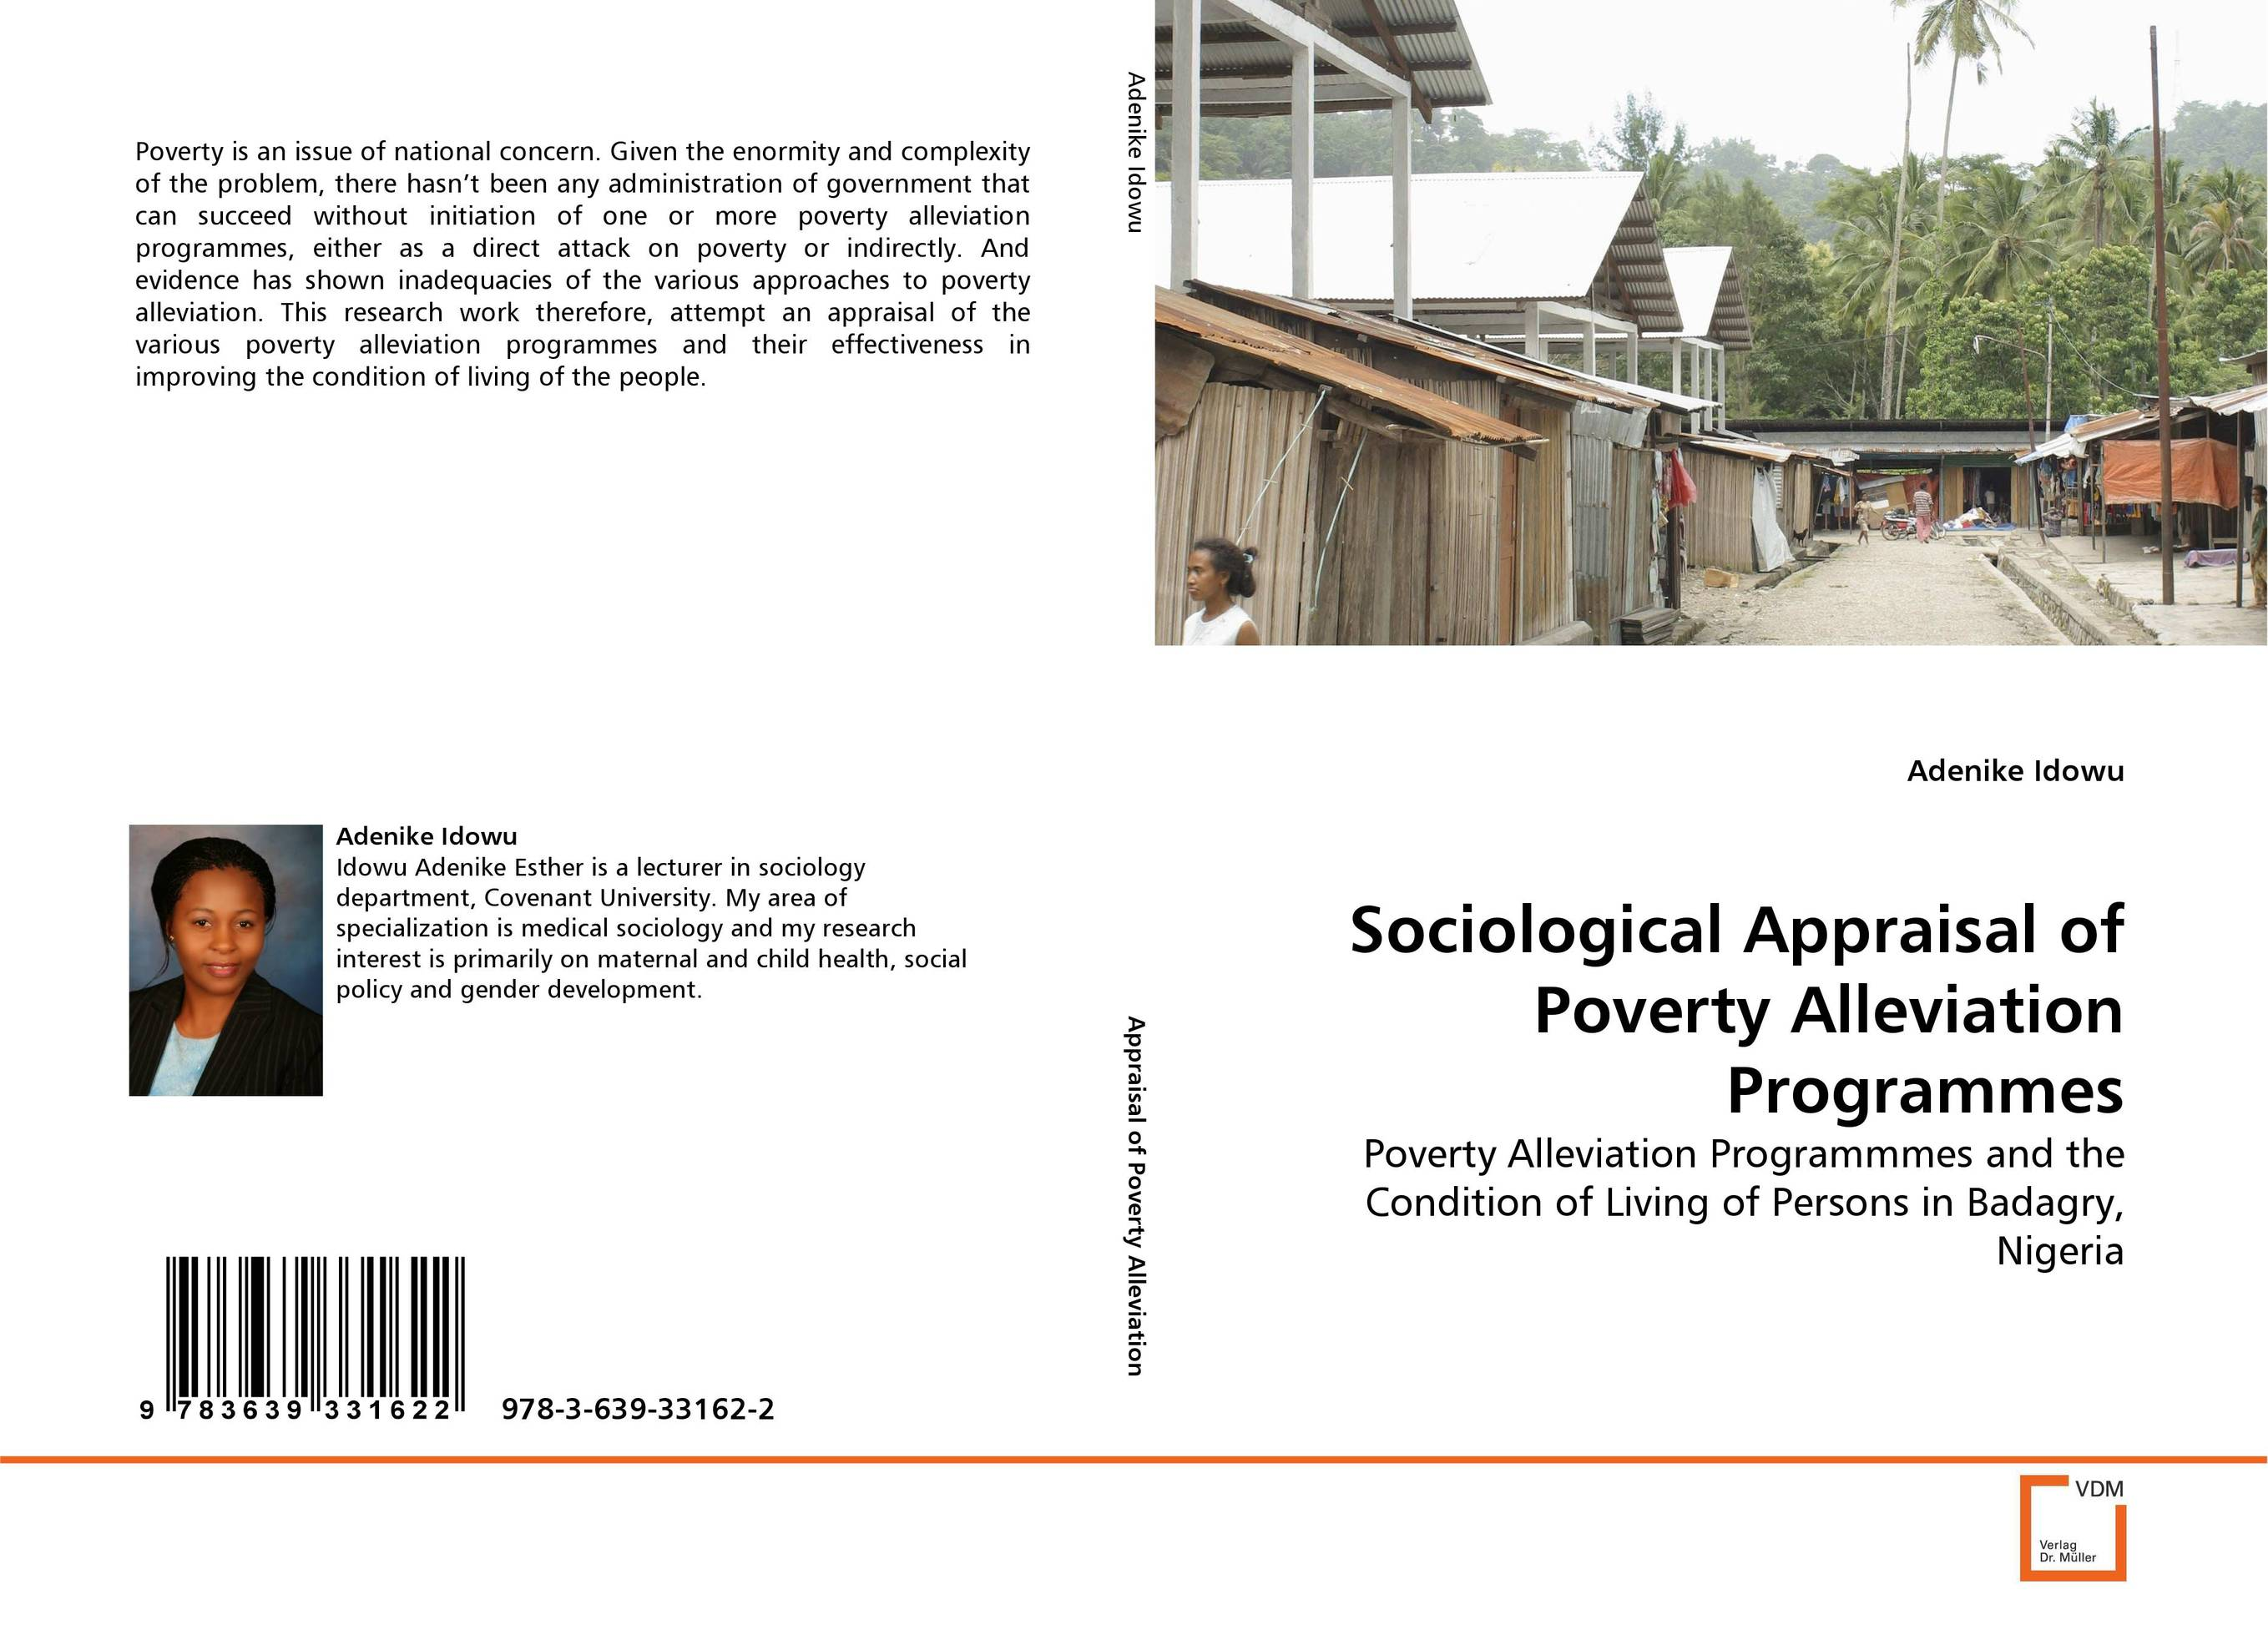 Sociological Appraisal of Poverty Alleviation Programmes local government budgeting and poverty alleviation in rwanda